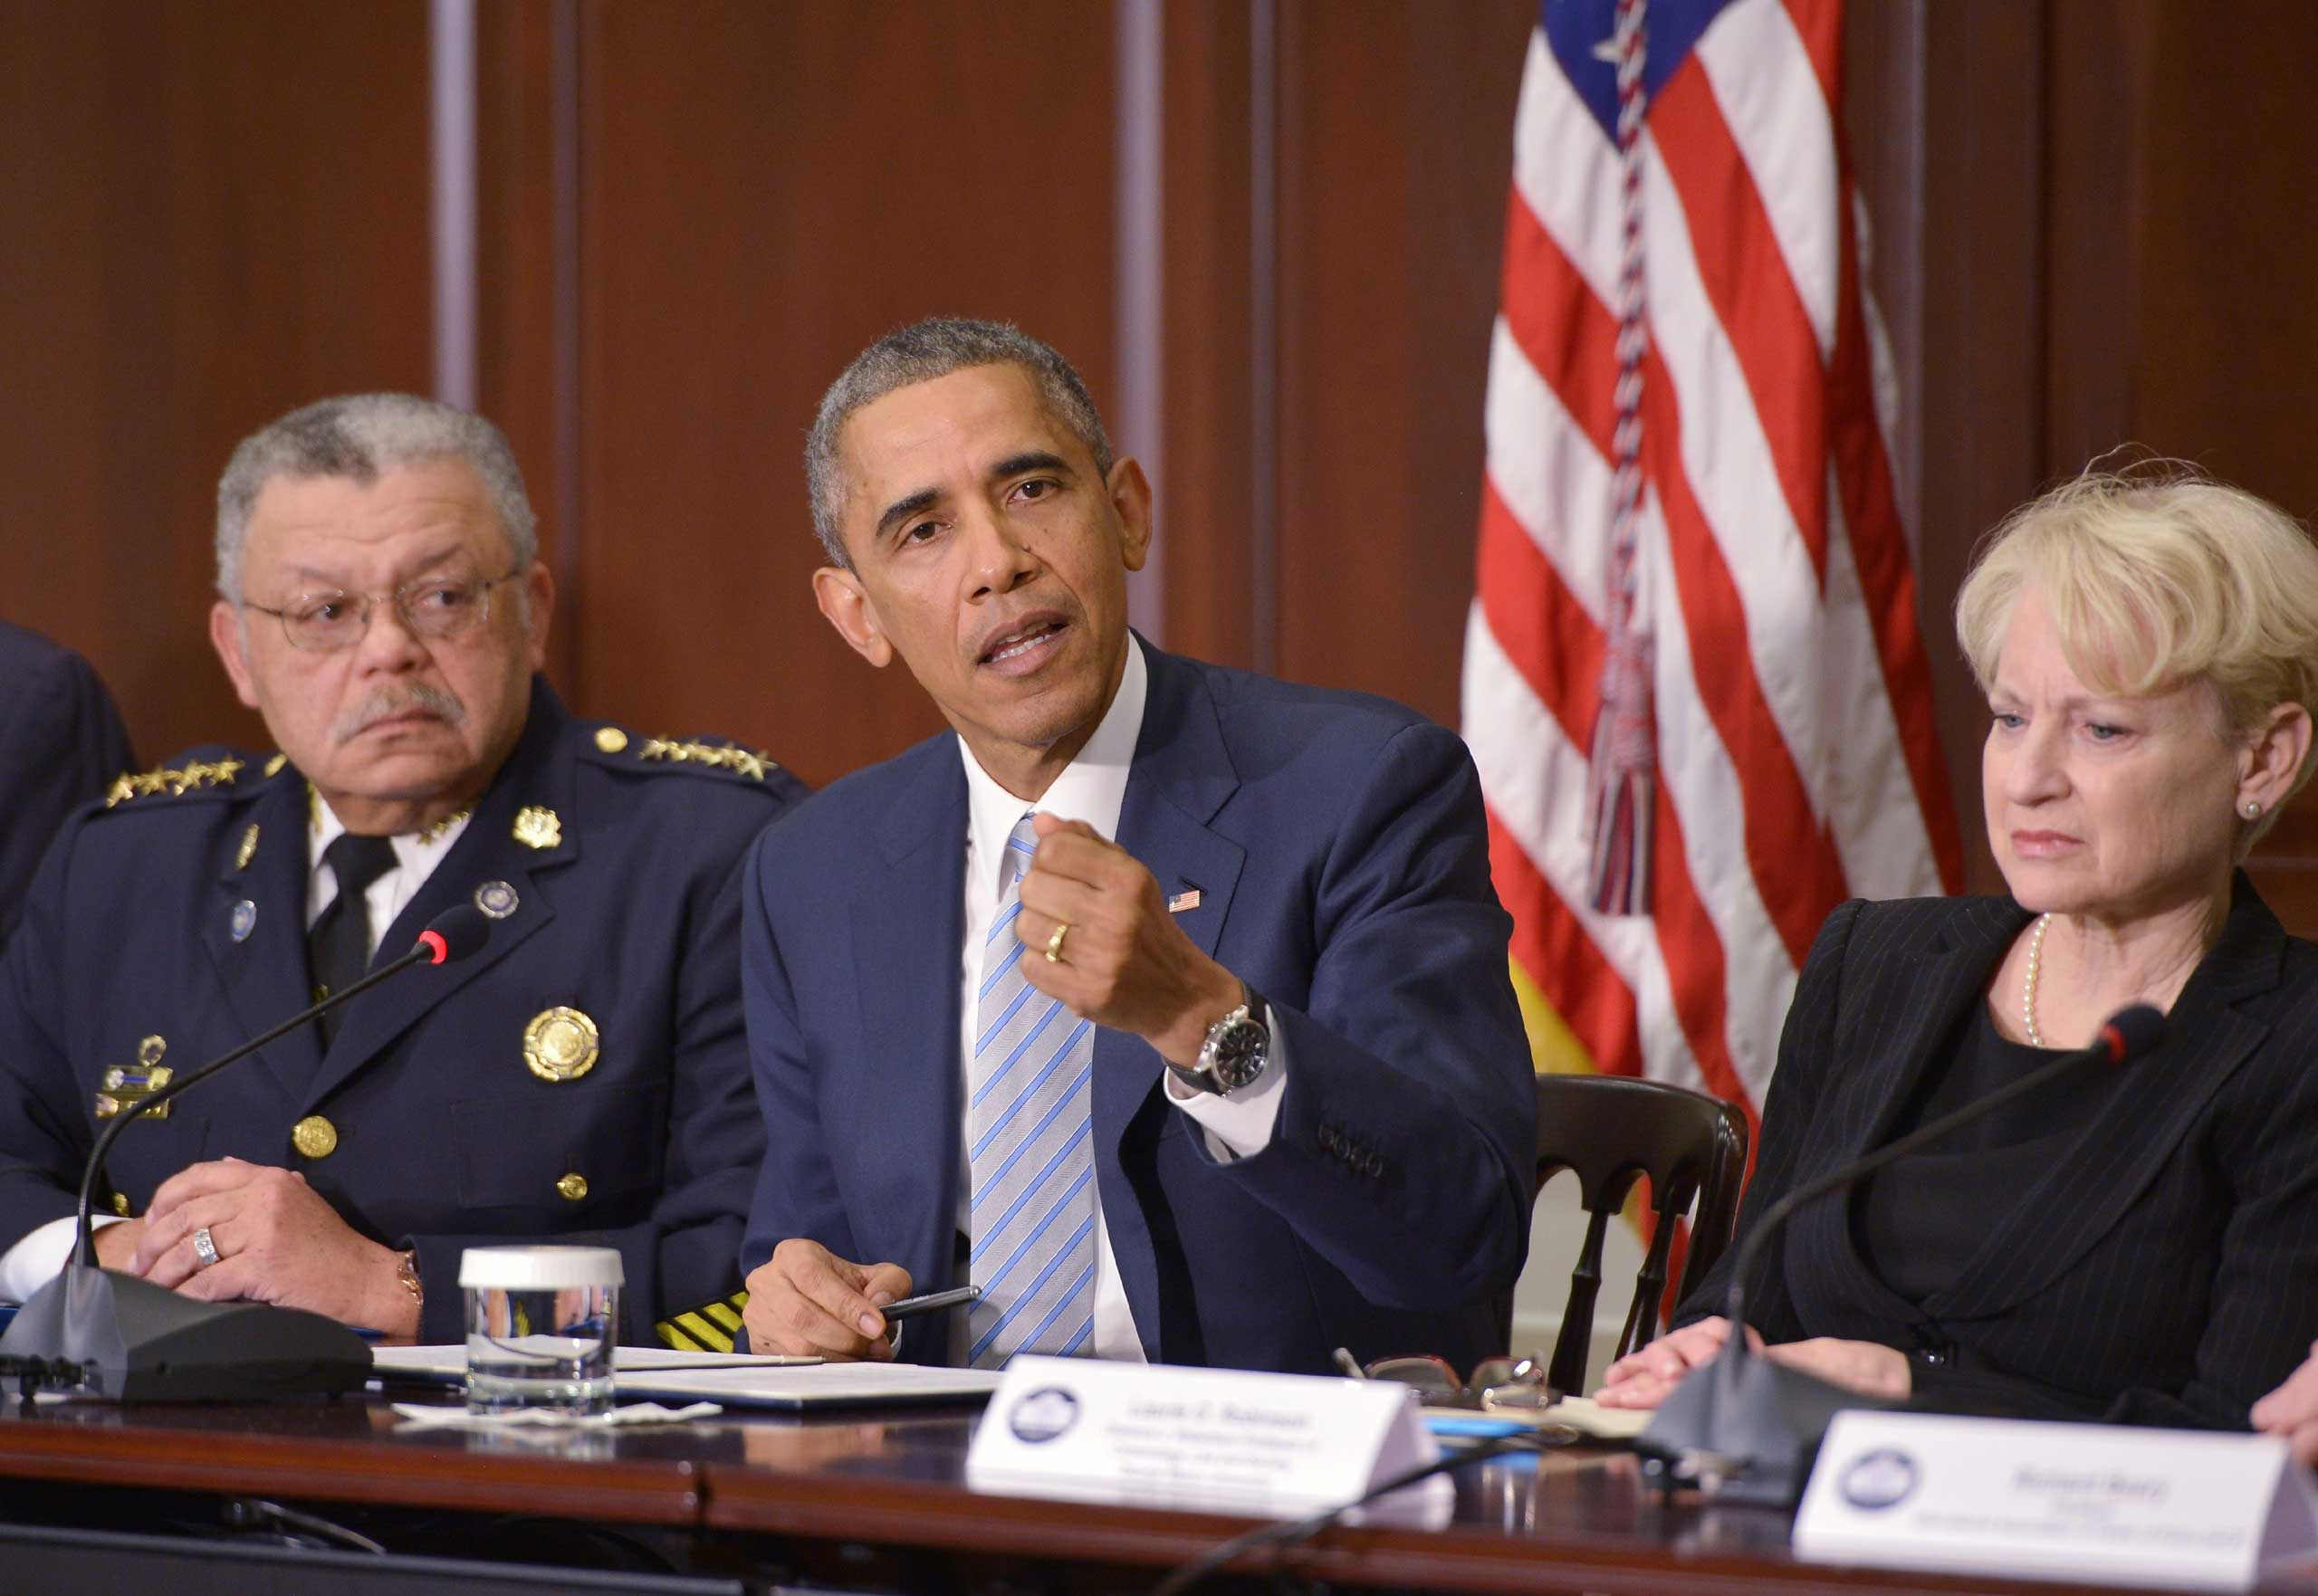 US President Barack Obama speaks after a meeting on building trust in communities following Ferguson unrest, with Philadelphia Police Commissioner Charles Ramsey (L) and George Mason University professor of Criminology, Law and Society Laurie Robinson, who were appointed by Obama to chair a task force on policing, at the Eisenhower Executive Office Building in Washington on Dec. 1, 2014.